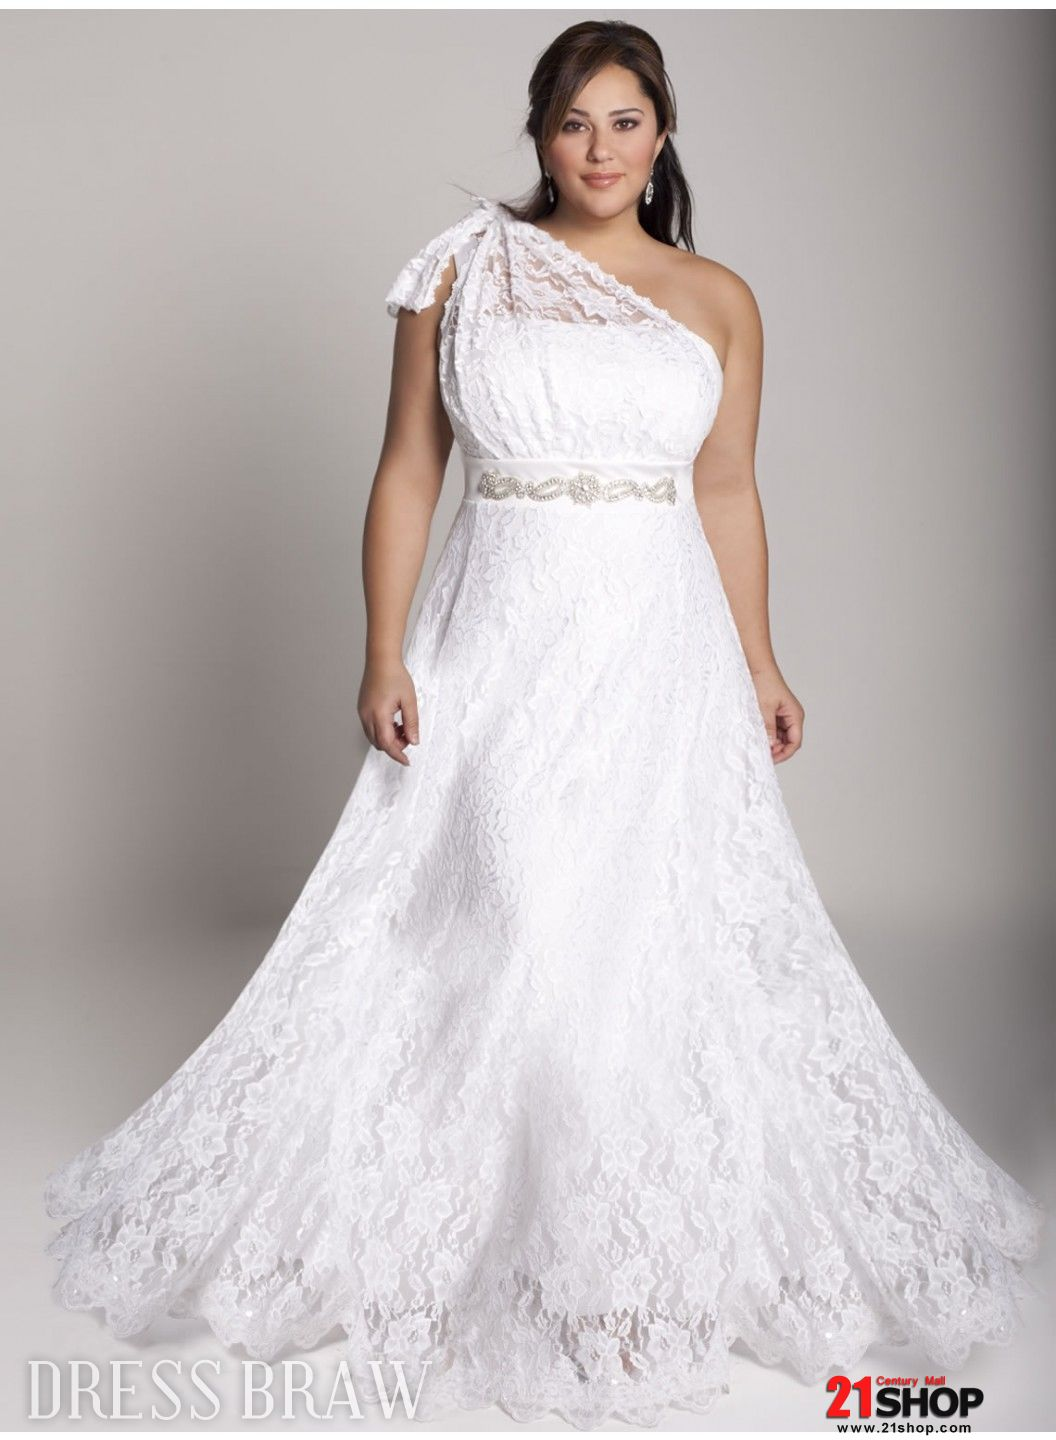 Plus Size Wedding Gowns Denver - Formal Dresses